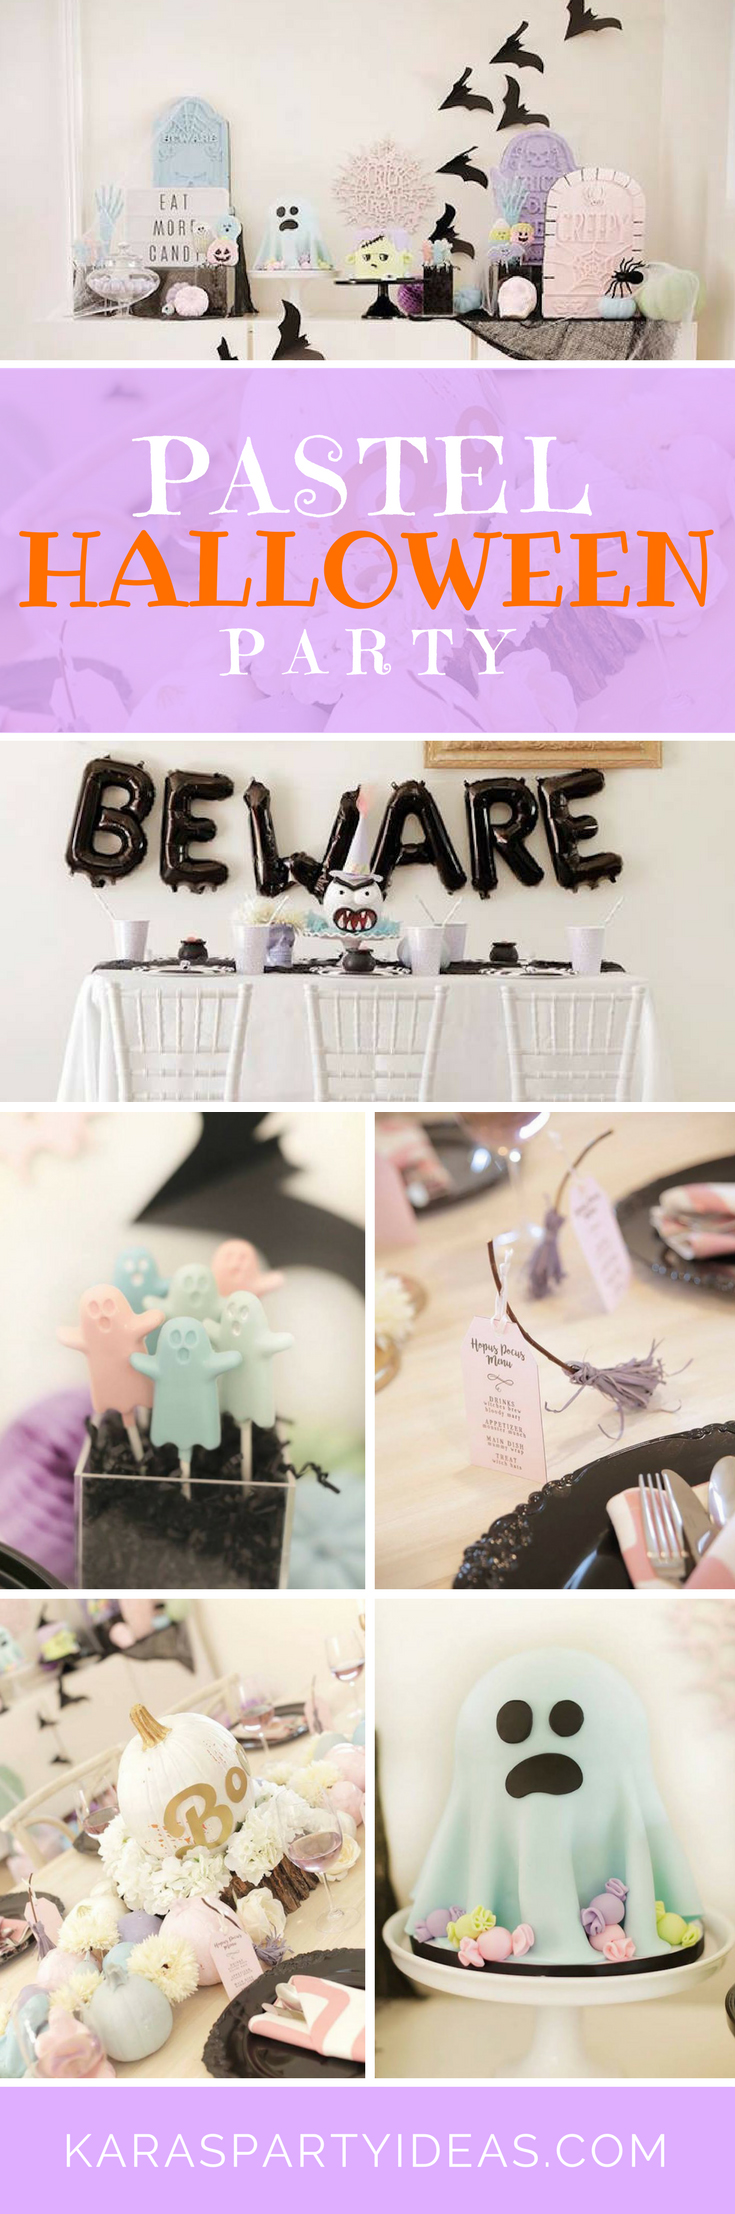 Pastel Halloween Party via Kara's Party Ideas - KarasPartyIdeas.com